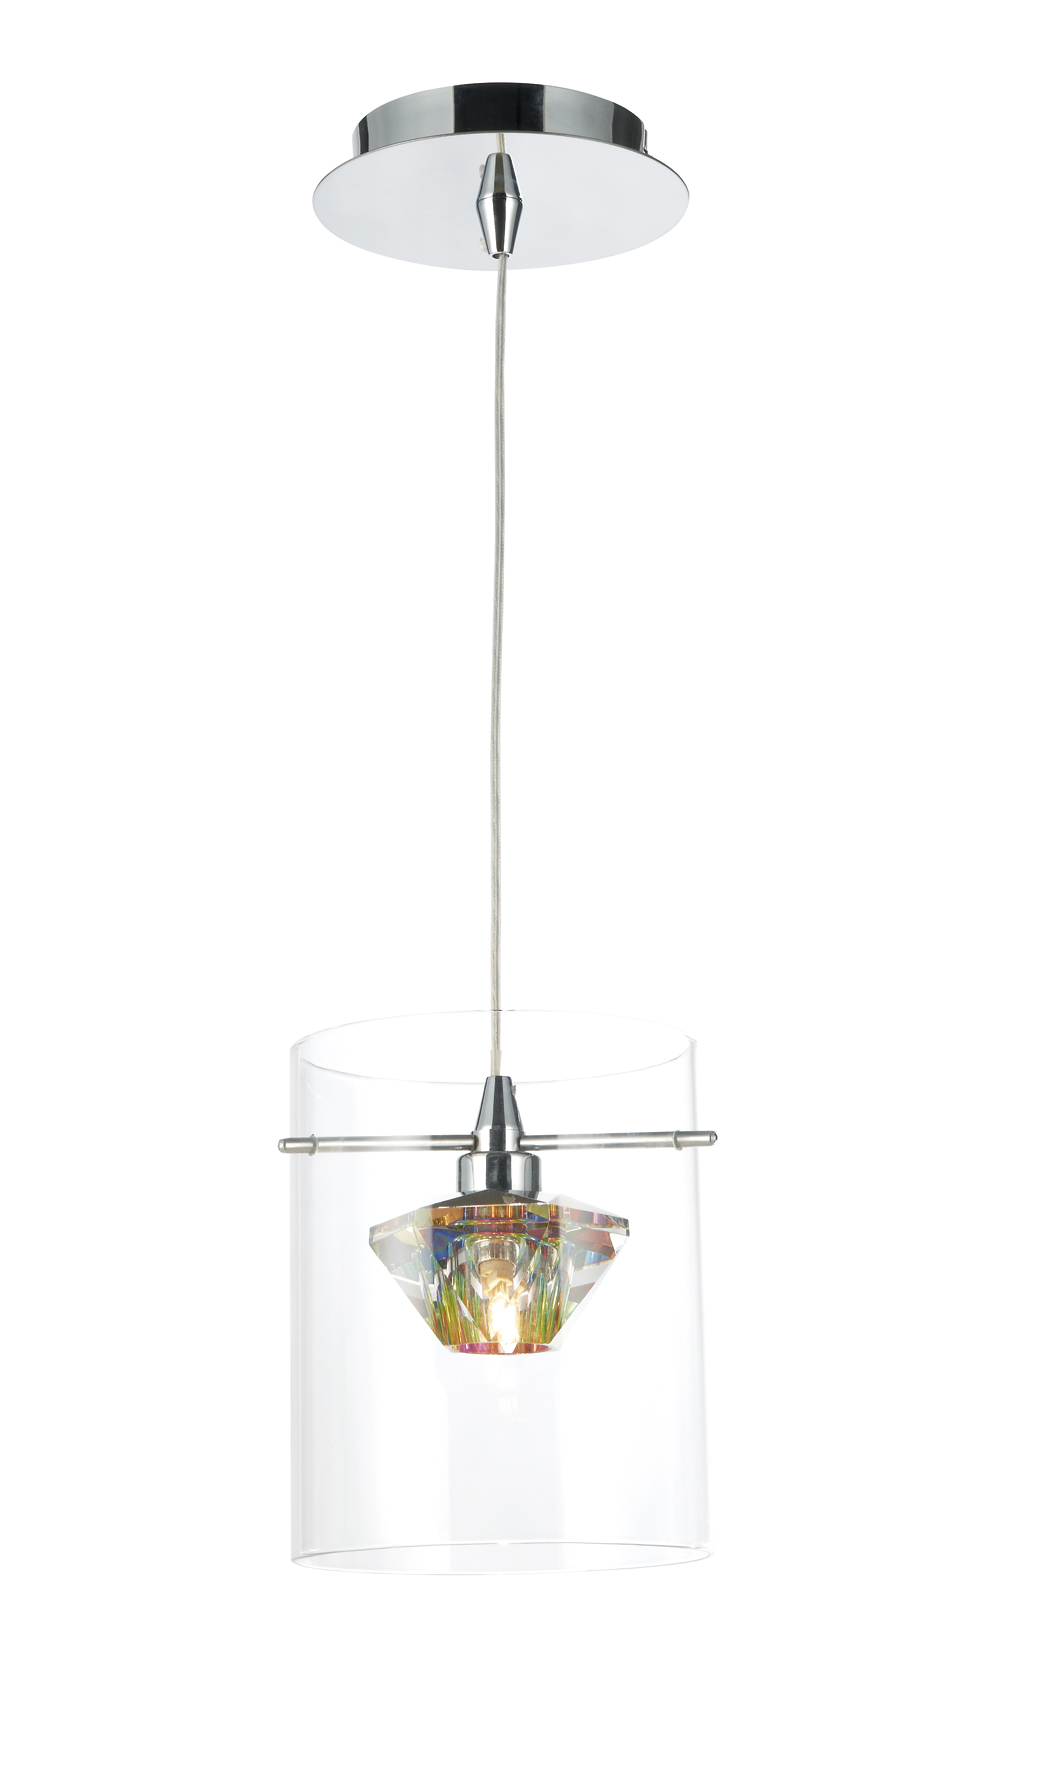 Double Insulated Class 2 Wall Lights : Decade 1 Light Pendant Polished Chrome Clear Class 2 Double Insulated BXDEC0108-17